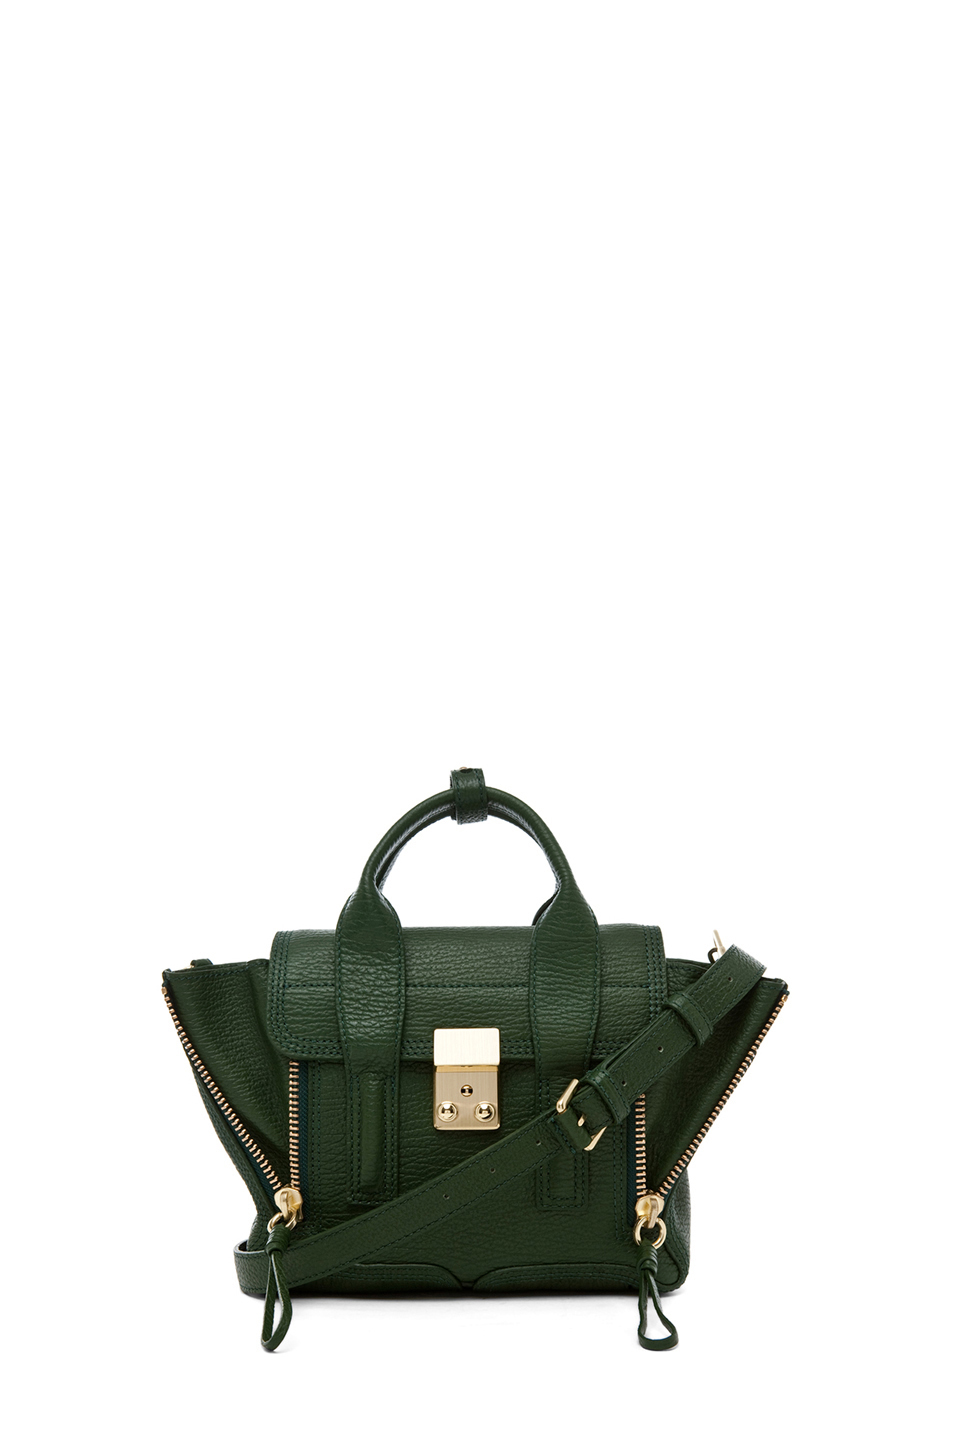 3.1 phillip lim|Mini Pashli Satchel in Jade